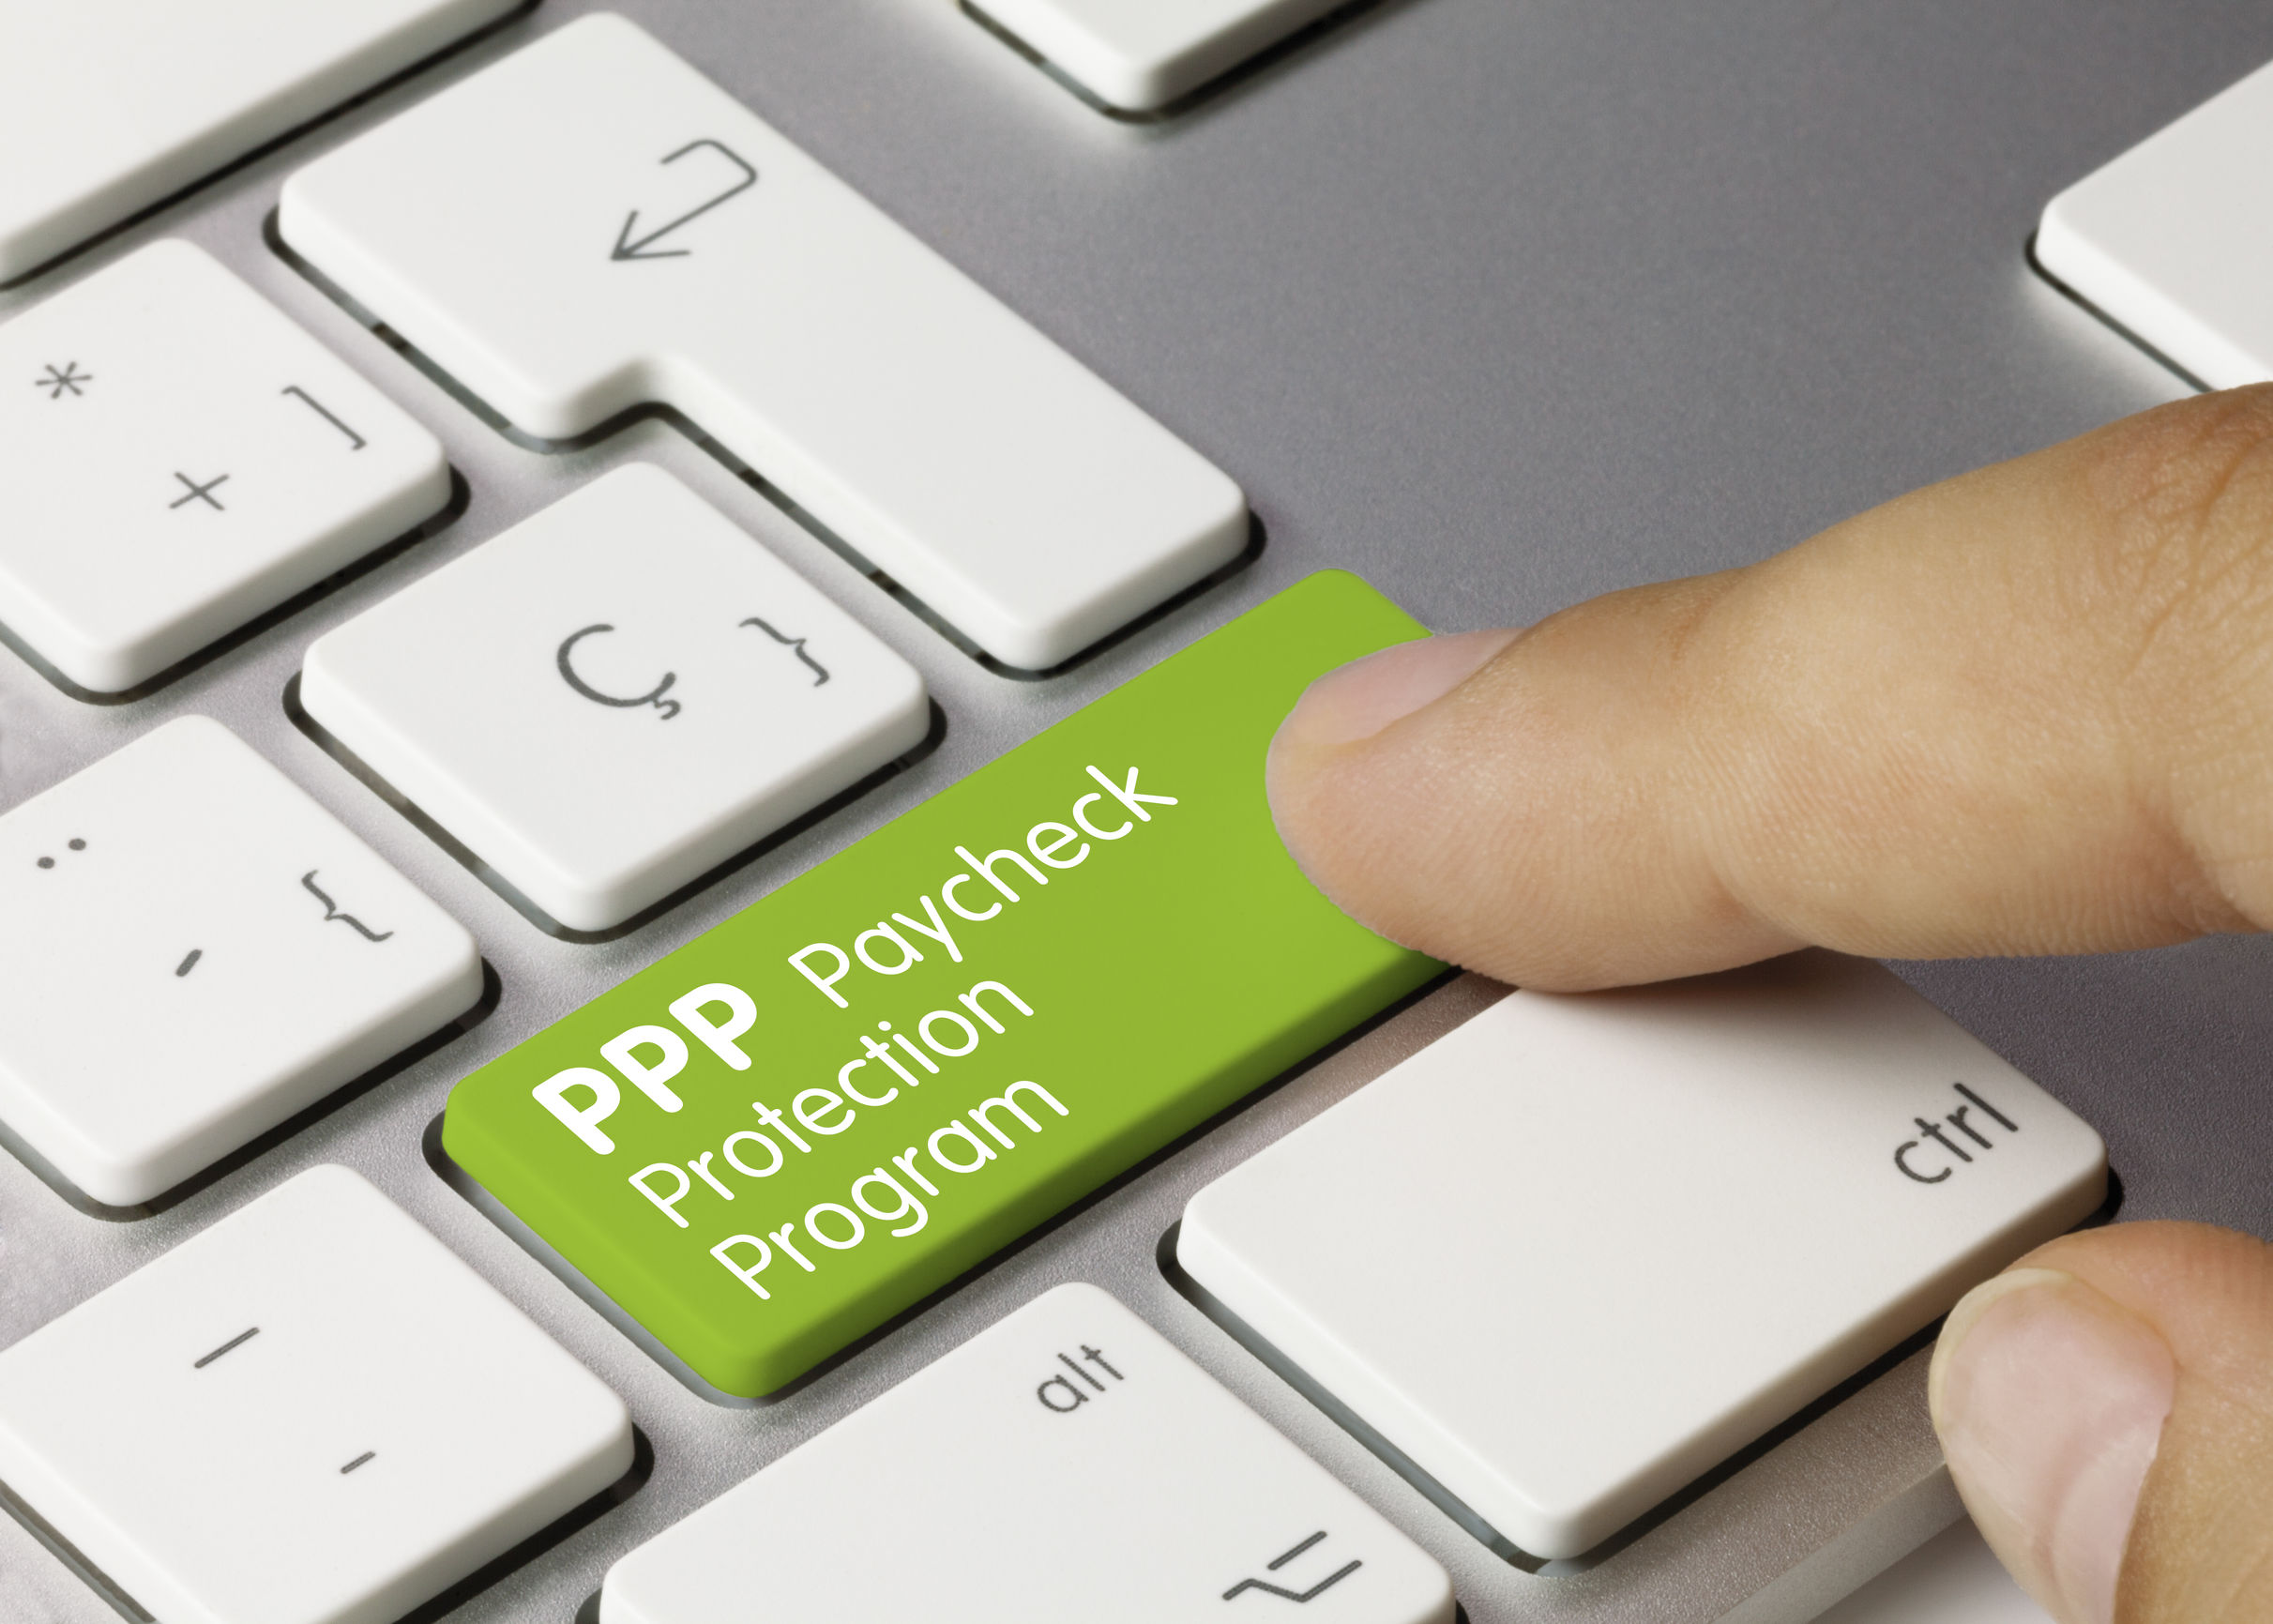 PPP blog post image